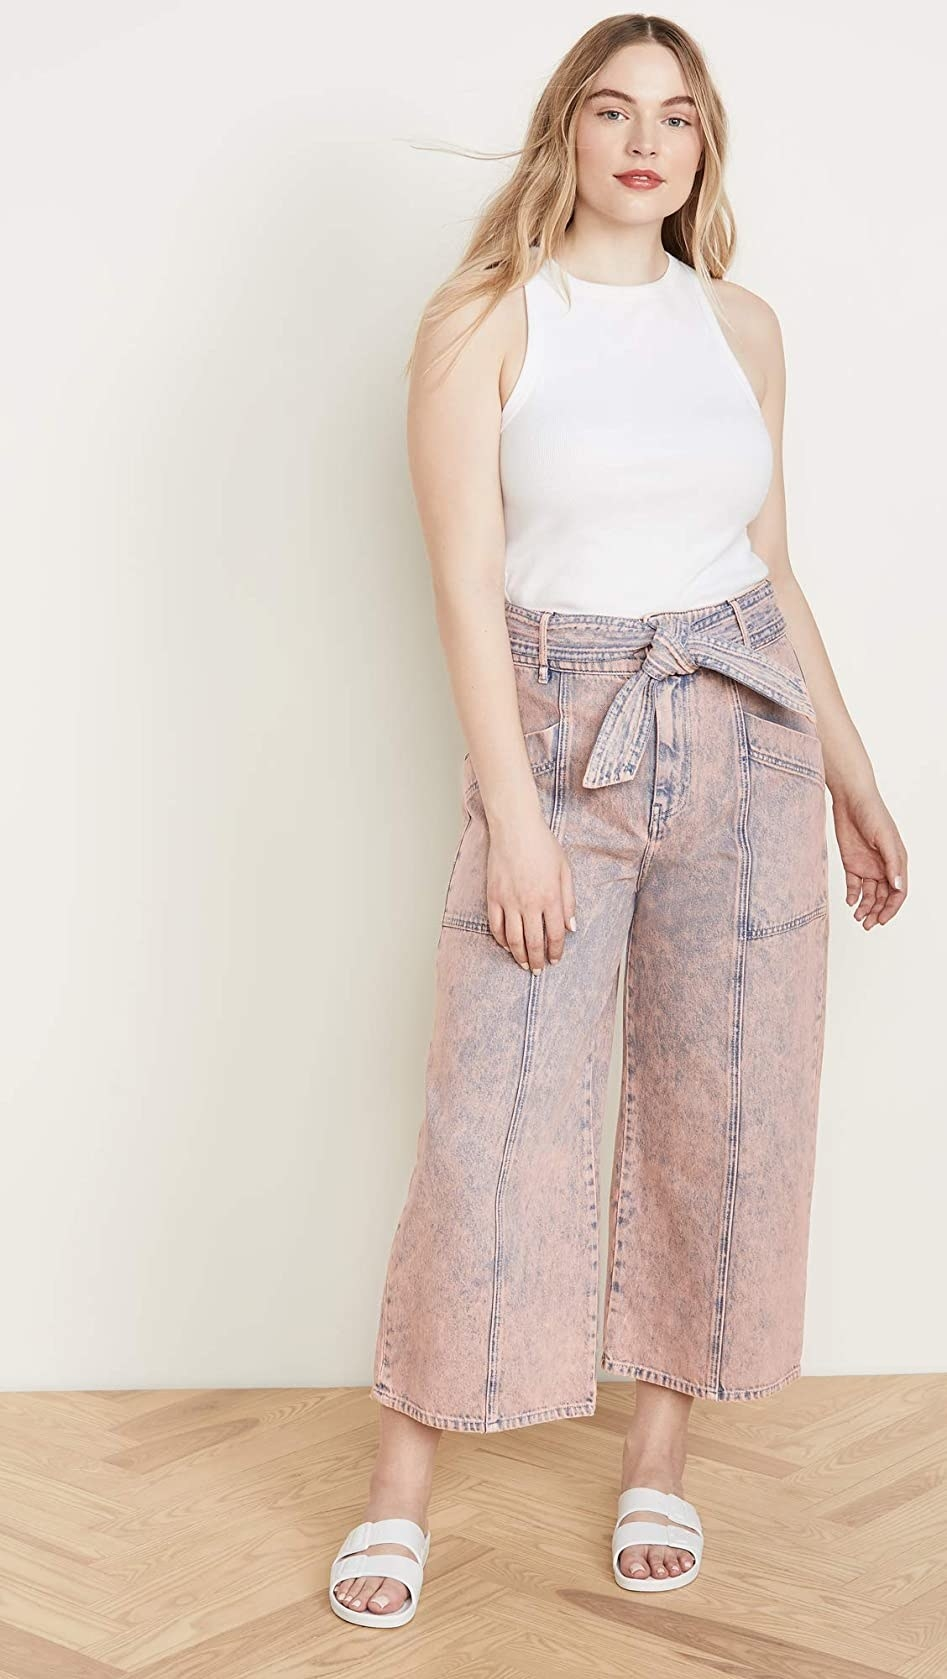 The pink wide-leg jeans